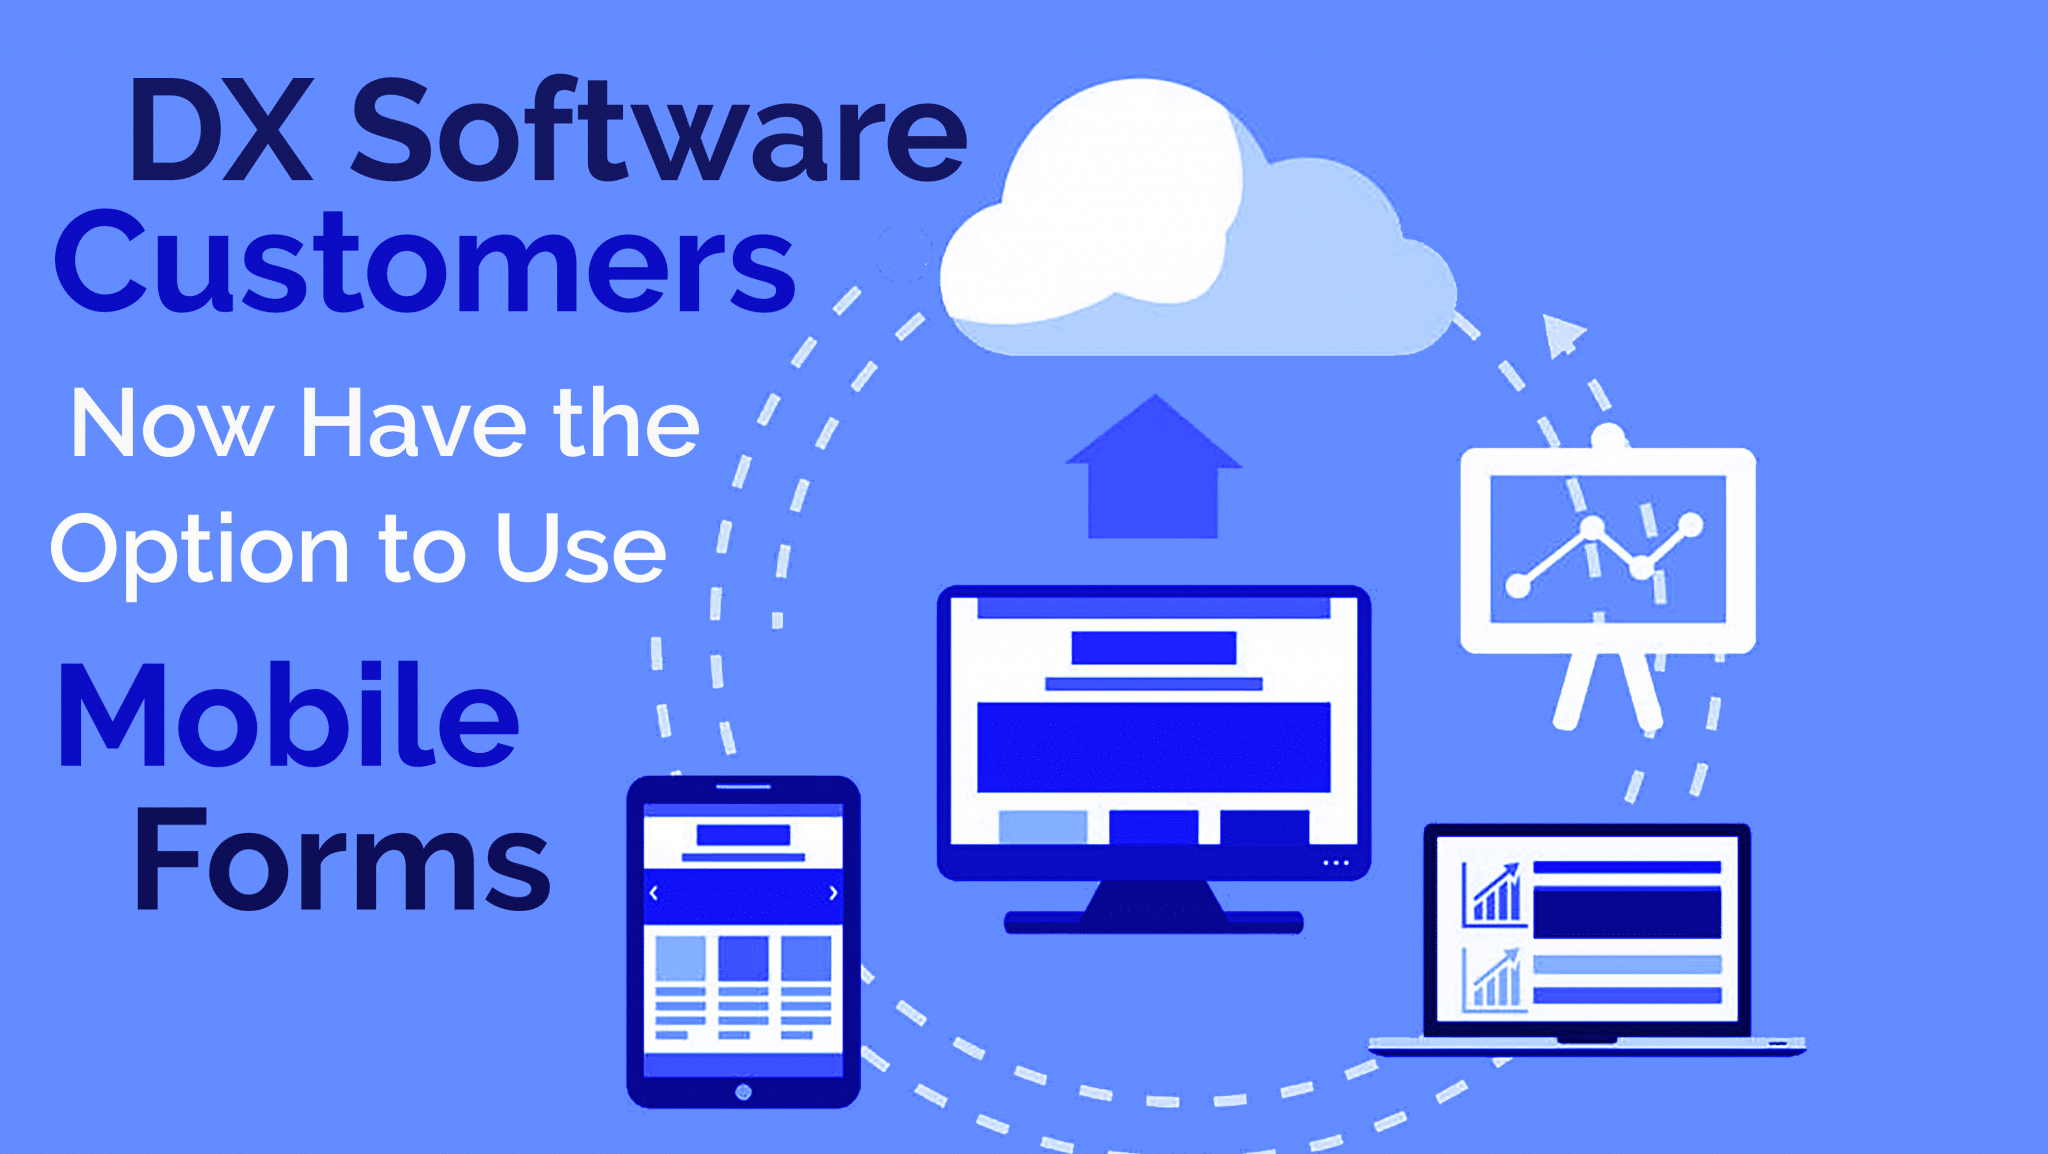 DX Software Customers Now Have the Option to Use Mobile Forms